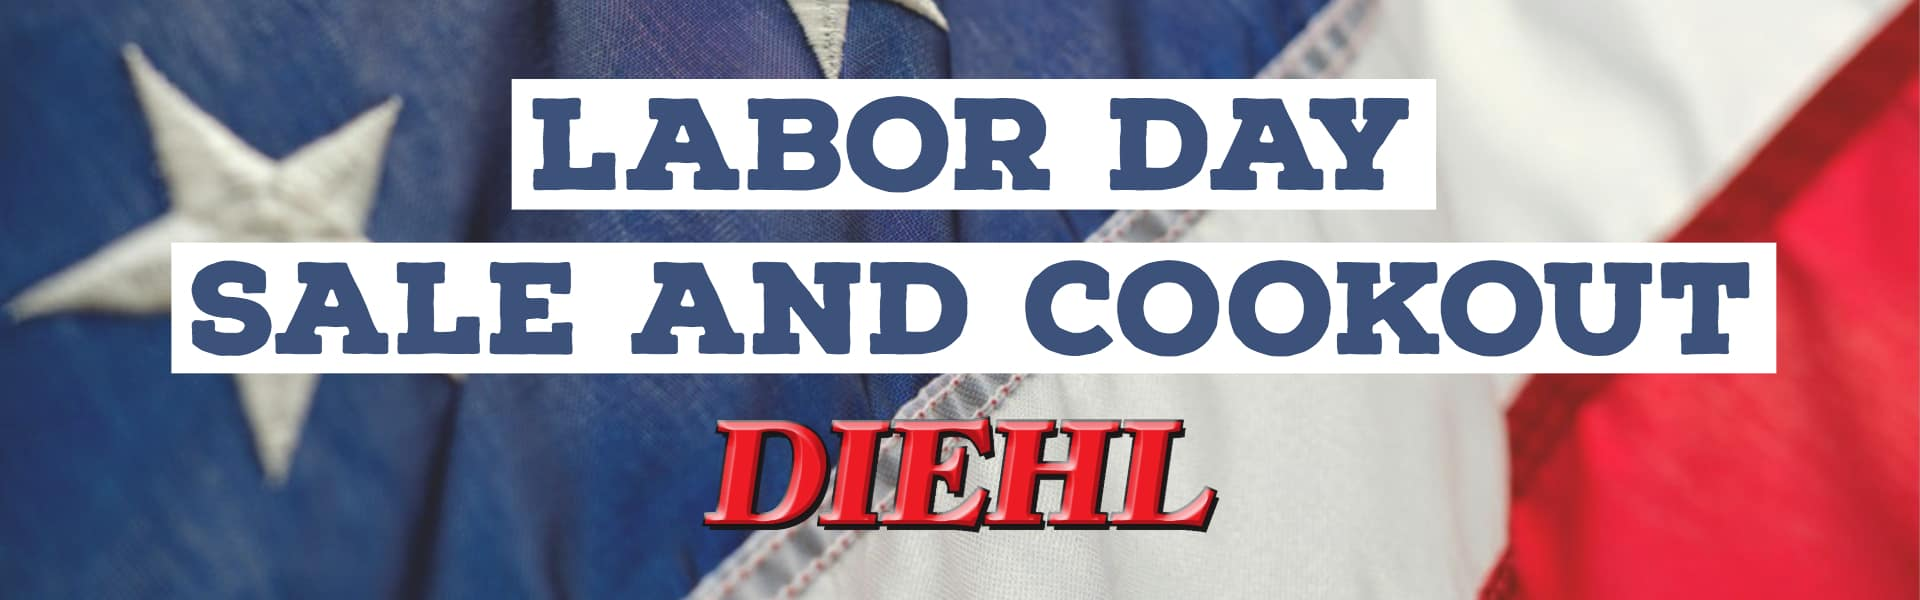 labor day sale and cookout diehl of butler diehl toyota butler county pa 270 Pittsburgh Rd, Butler, PA 16002 new vehicle specials used vehicle specials